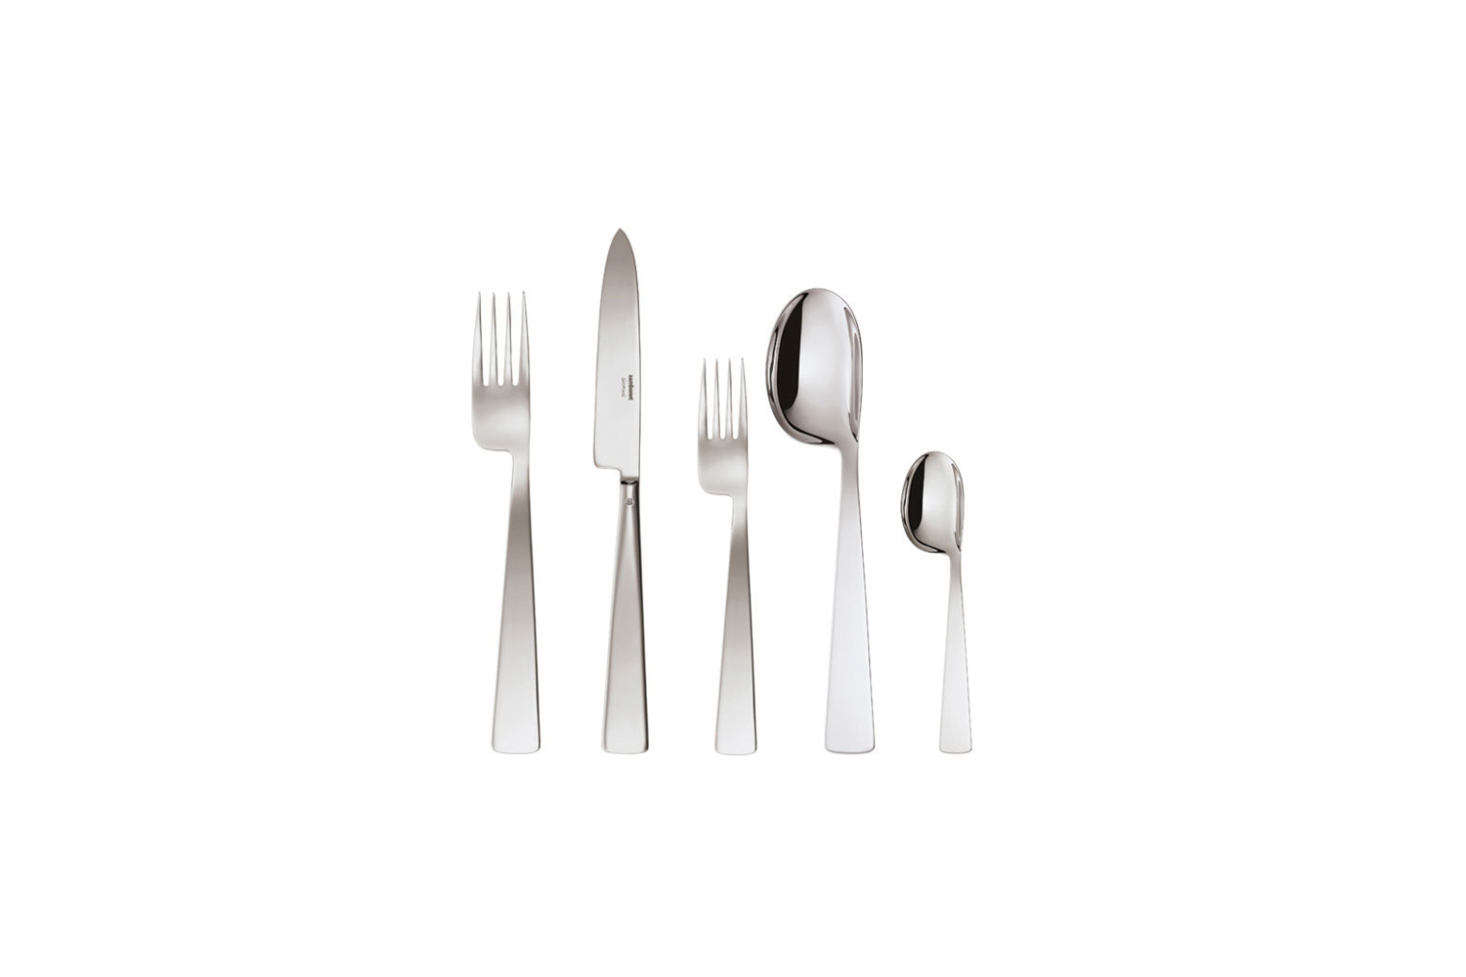 Another design by Gio Ponti for Sambonet, theConca Stainless Steel 5-Piece Place Settingis $85 at Sambonet. It's also one of our picks in 10 Easy Pieces: Quirky Sculptural Flatware.